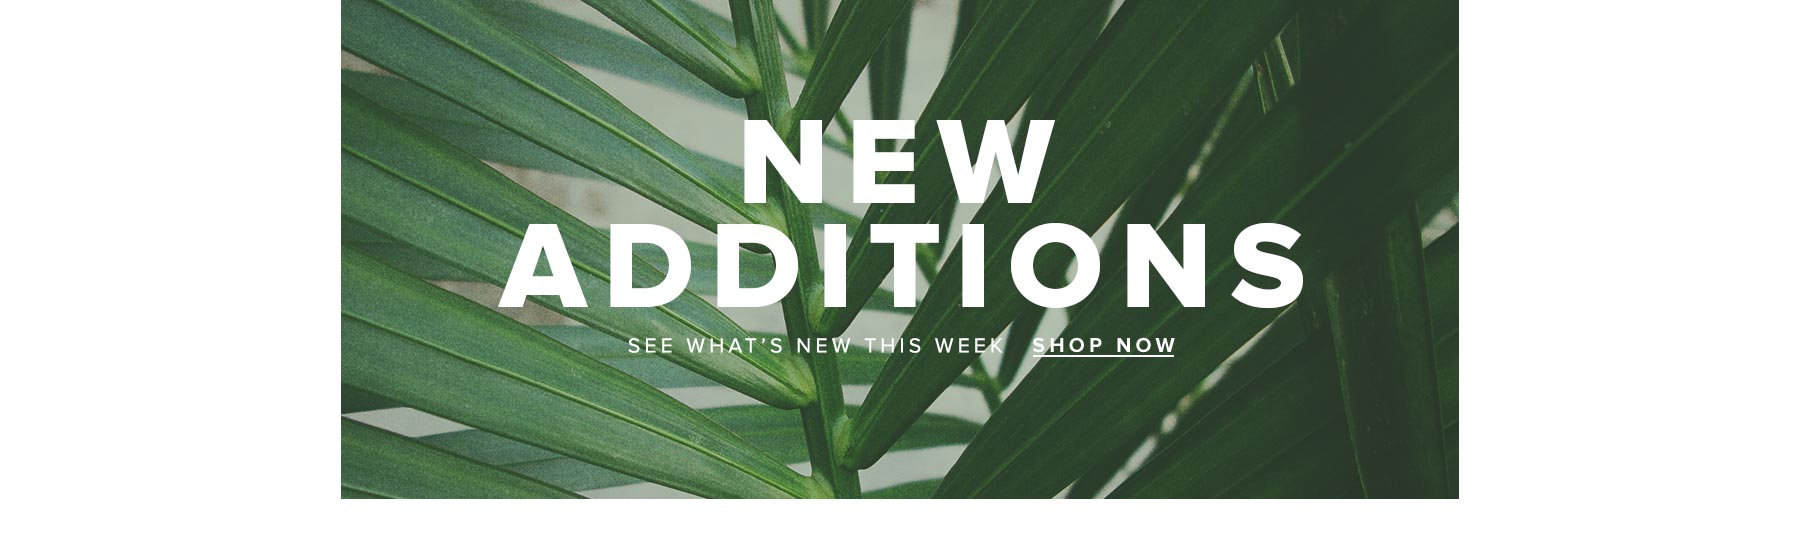 See what's new this week, Shop New Arrivals